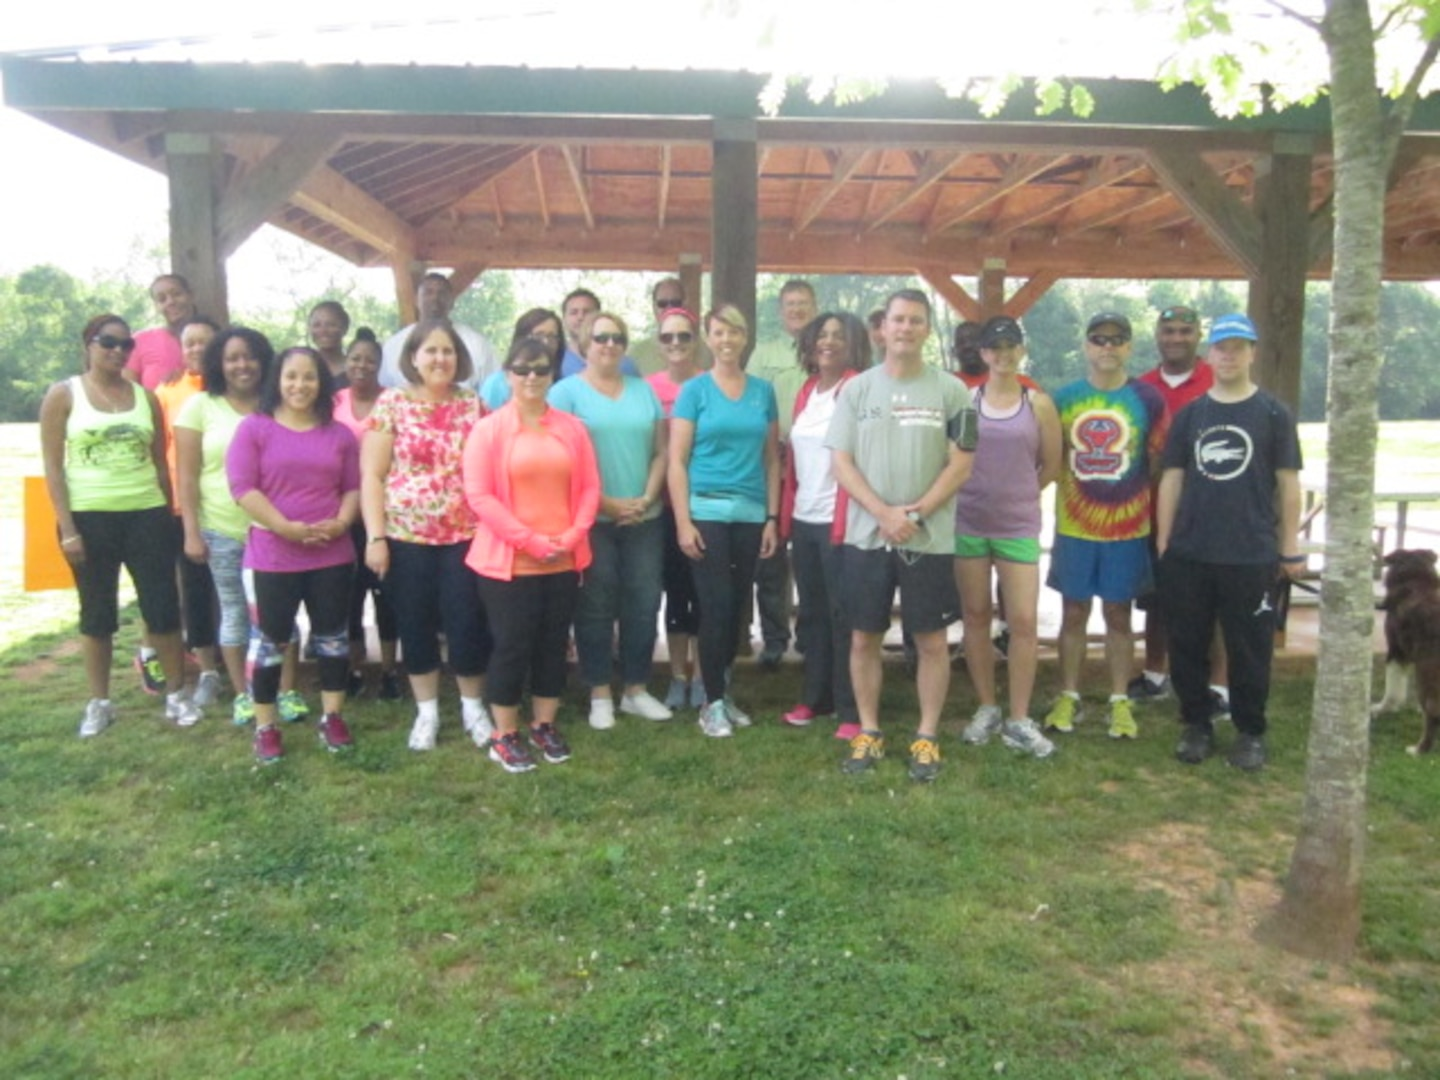 Thirty Defense Contract Management Agency Huntsville team members recently participated in a two-mile walk/run in observance of Sexual Assault Awareness and Prevention Month. The command hosted several events throughout the day, including a presentation led by Tracy Anderson, the agency's Central Regional Command Sexual Assault Prevention and Response Program victim advocate.